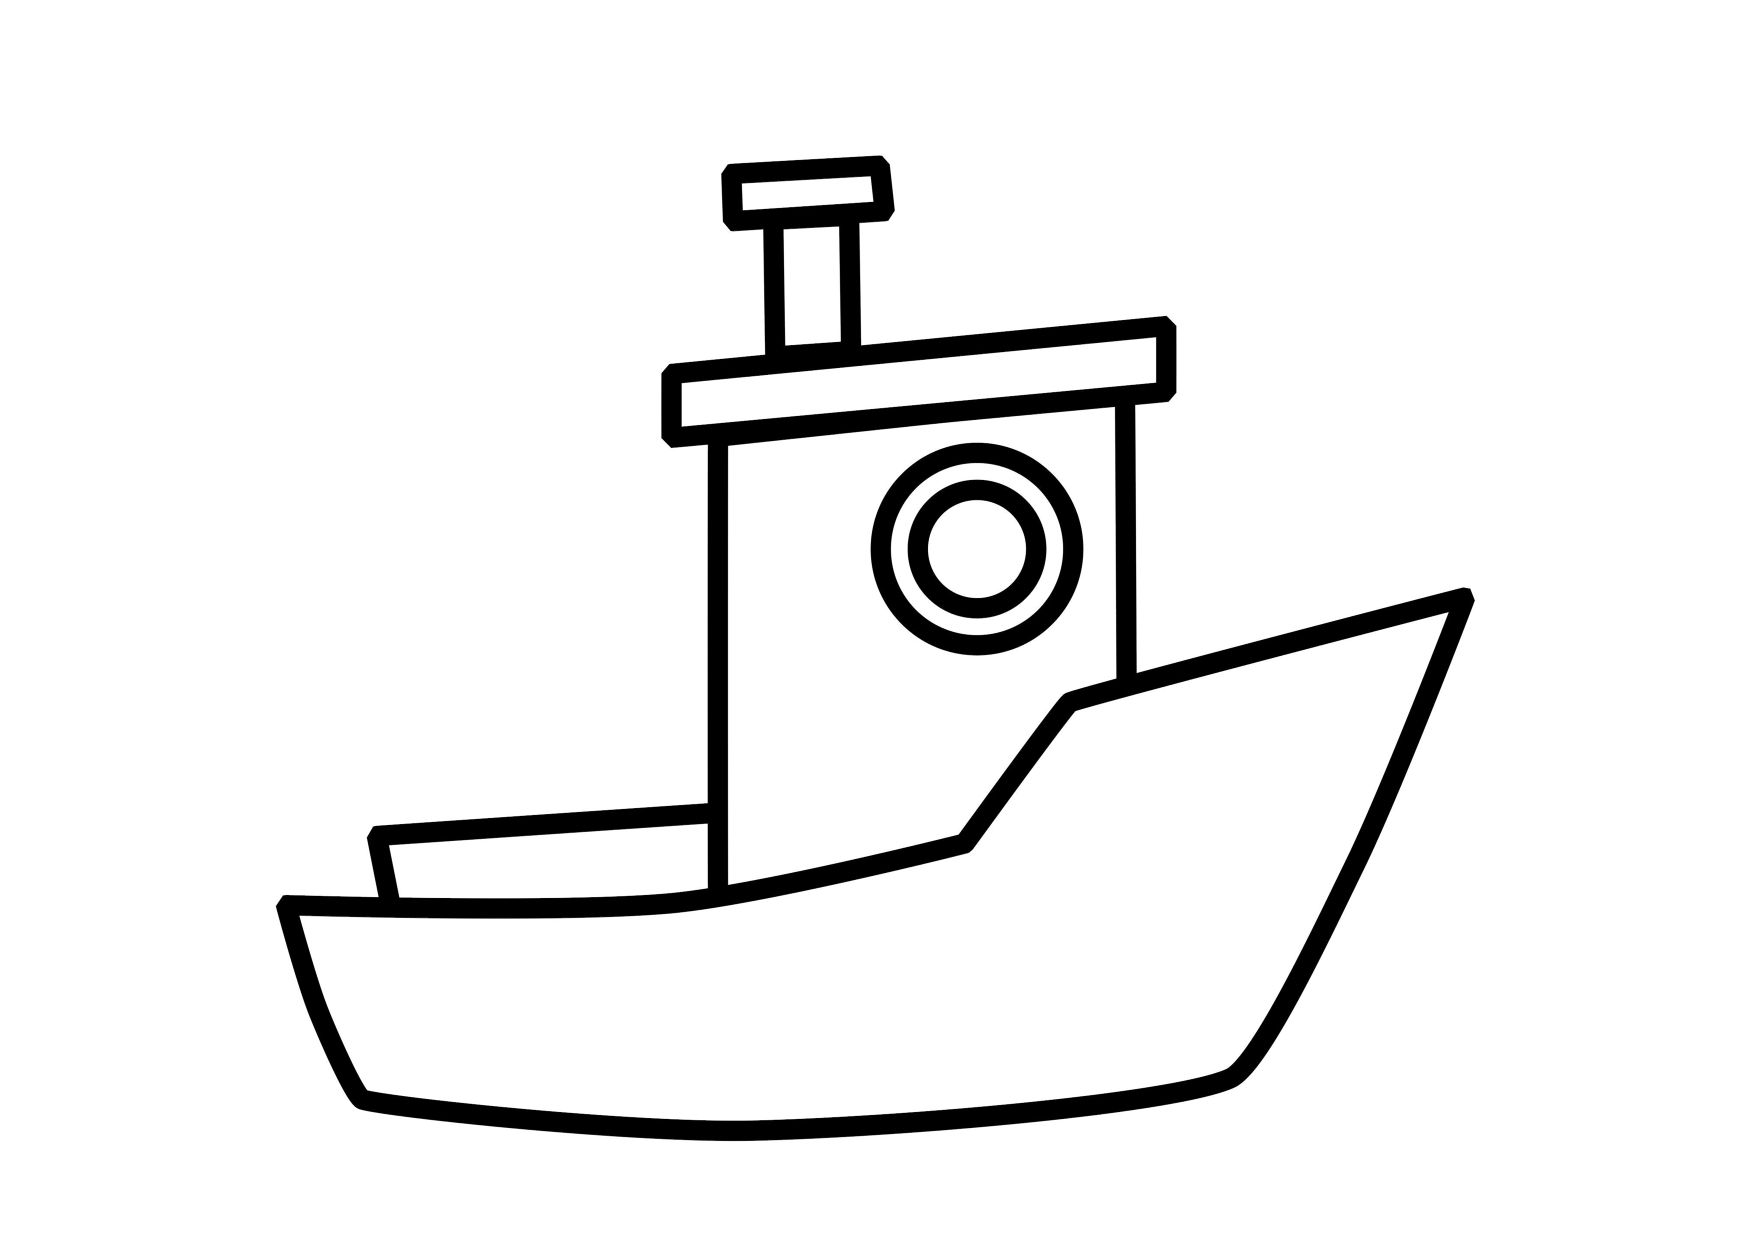 Boat Color Page Transportation Coloring Pages Color Plate Coloring - Free Printable Sailboat Template